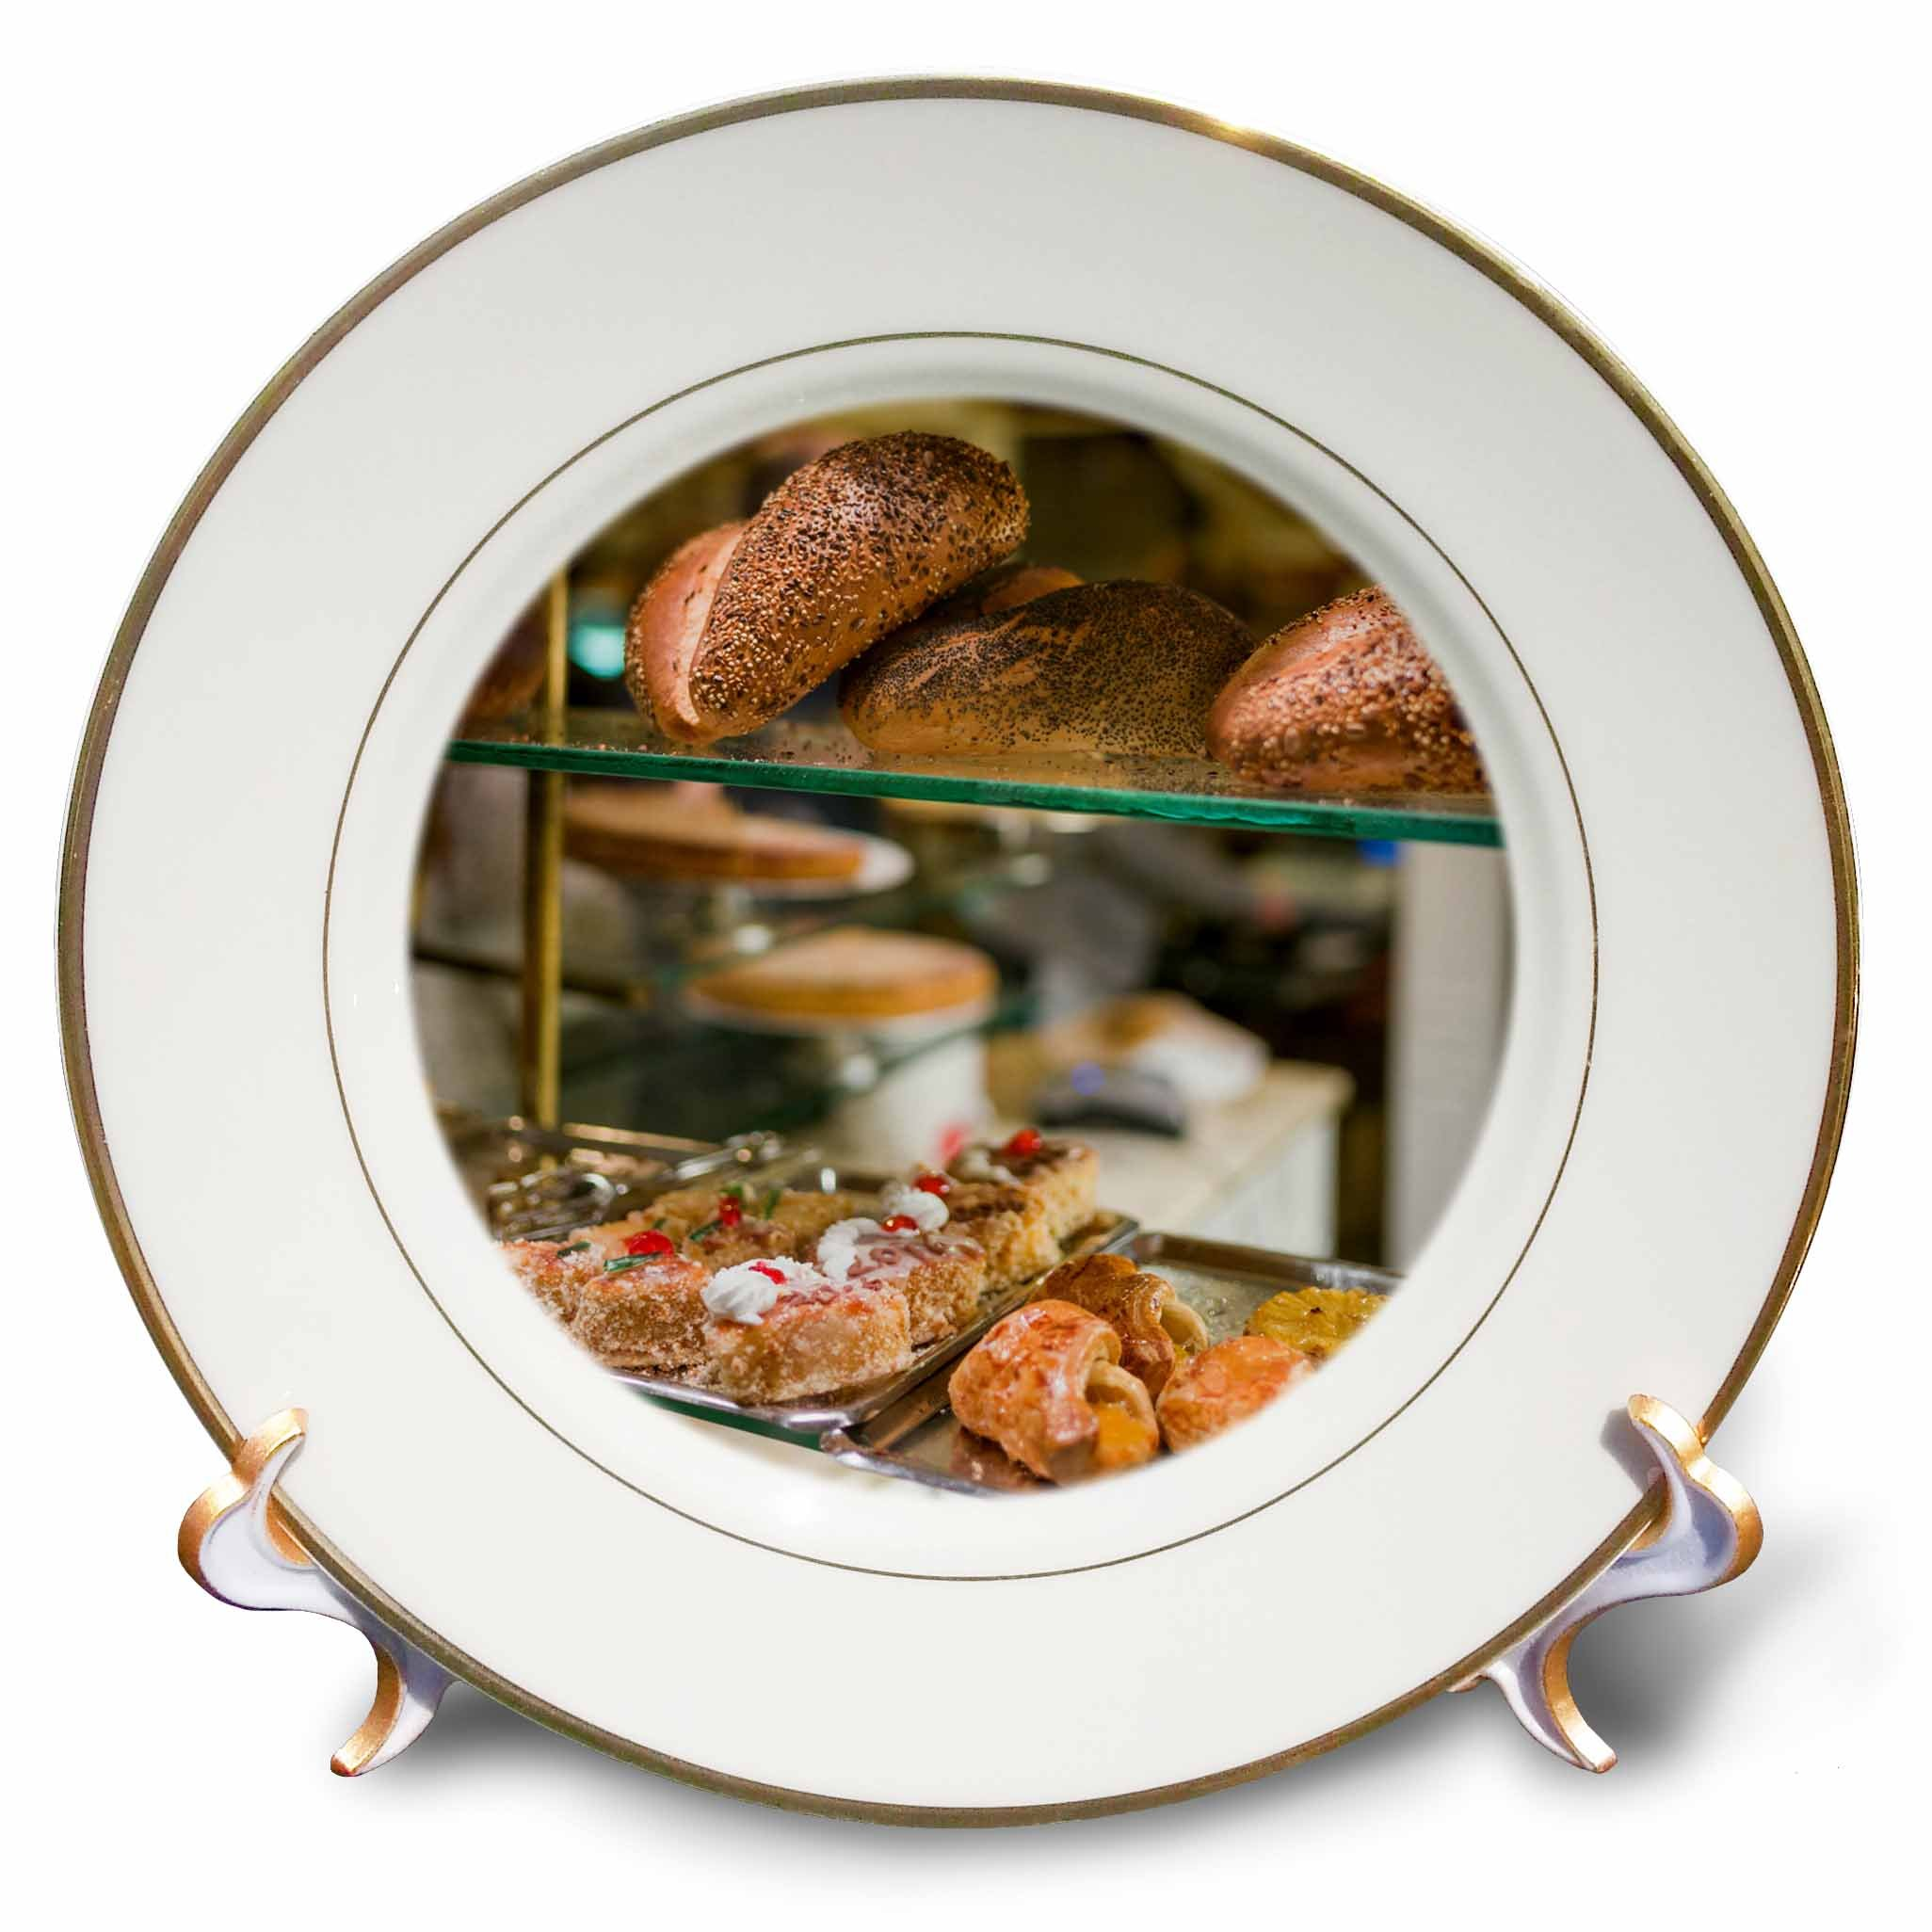 3dRose Danita Delimont - Food - Belgium, Antwerp. Shopping district, bakery window - 8 inch Porcelain Plate (cp_277300_1) by 3dRose (Image #1)